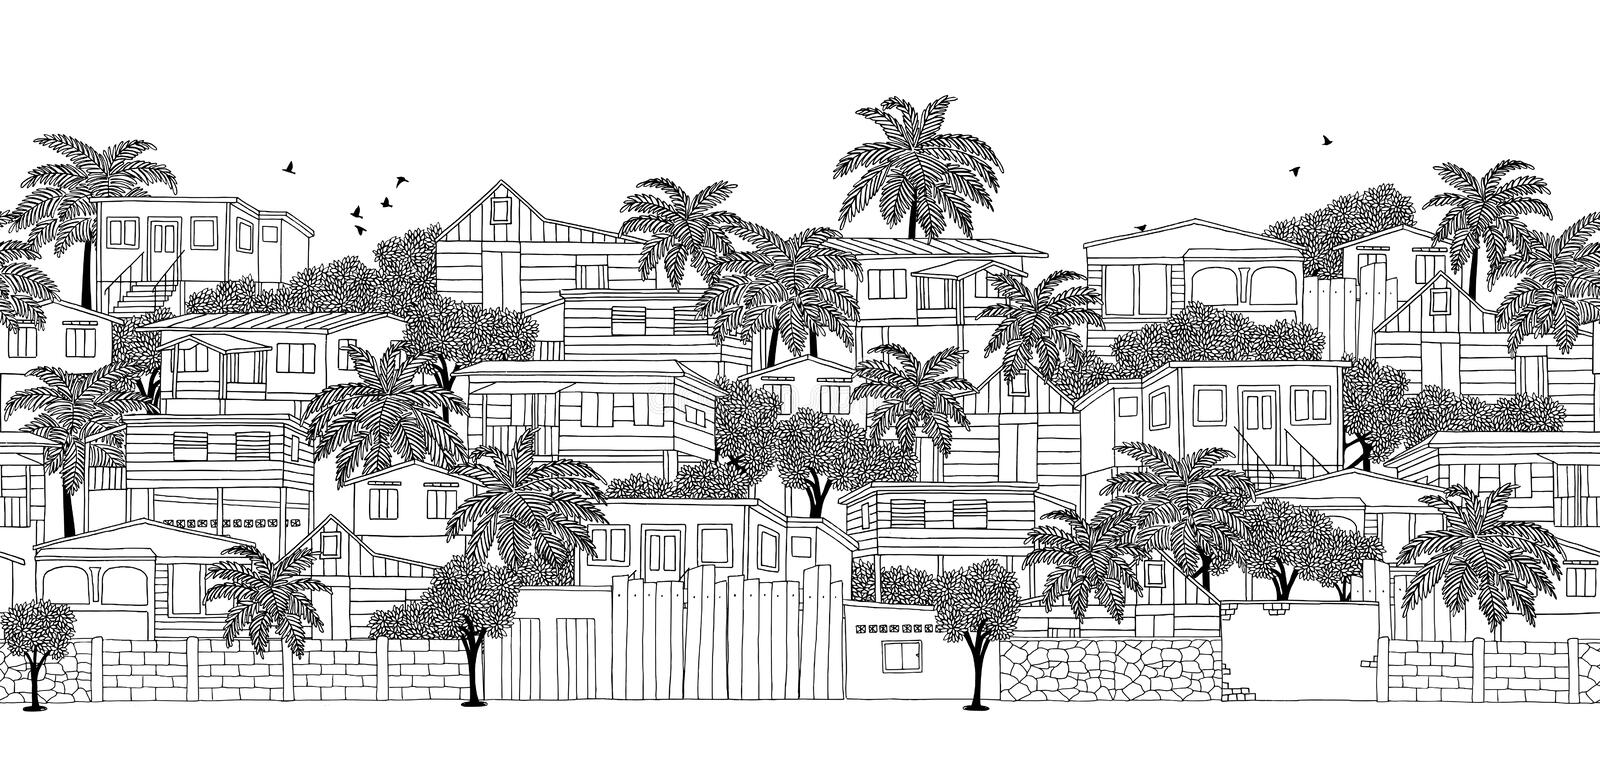 Seamless banner of a Caribbean village. With wooden stilt houses, hand drawn black and white illustration vector illustration